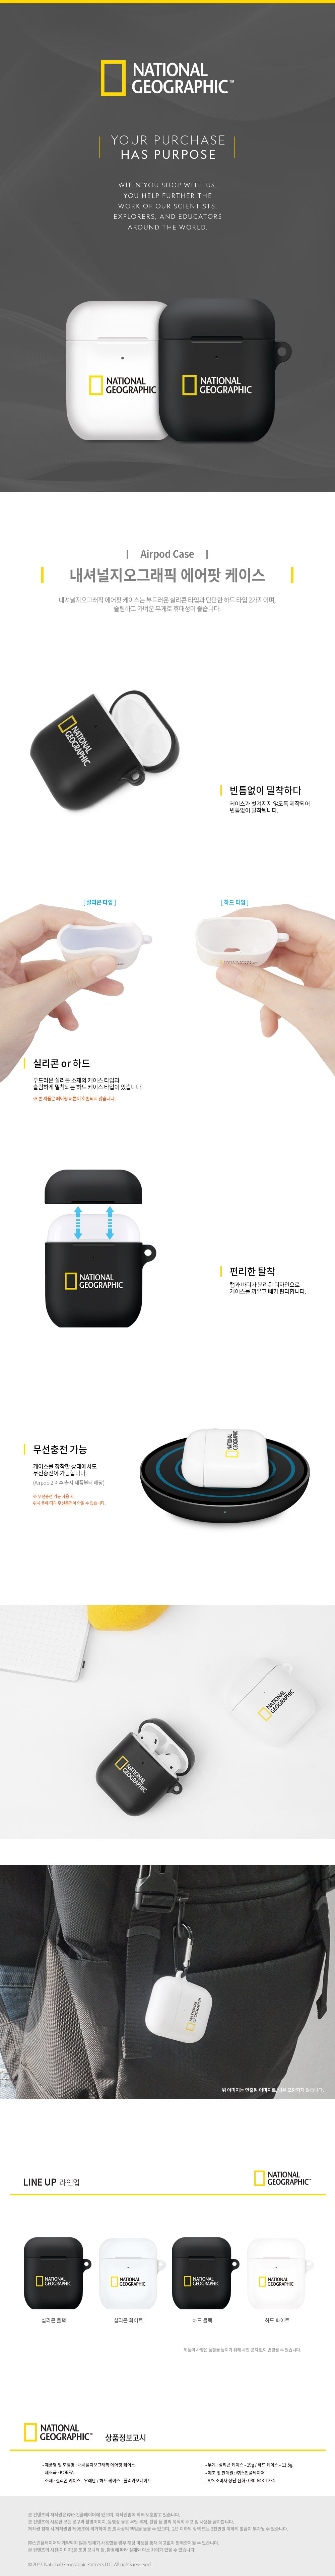 National Geographic Brand Logo Apple AirPods 2&1 Hang Case Cover